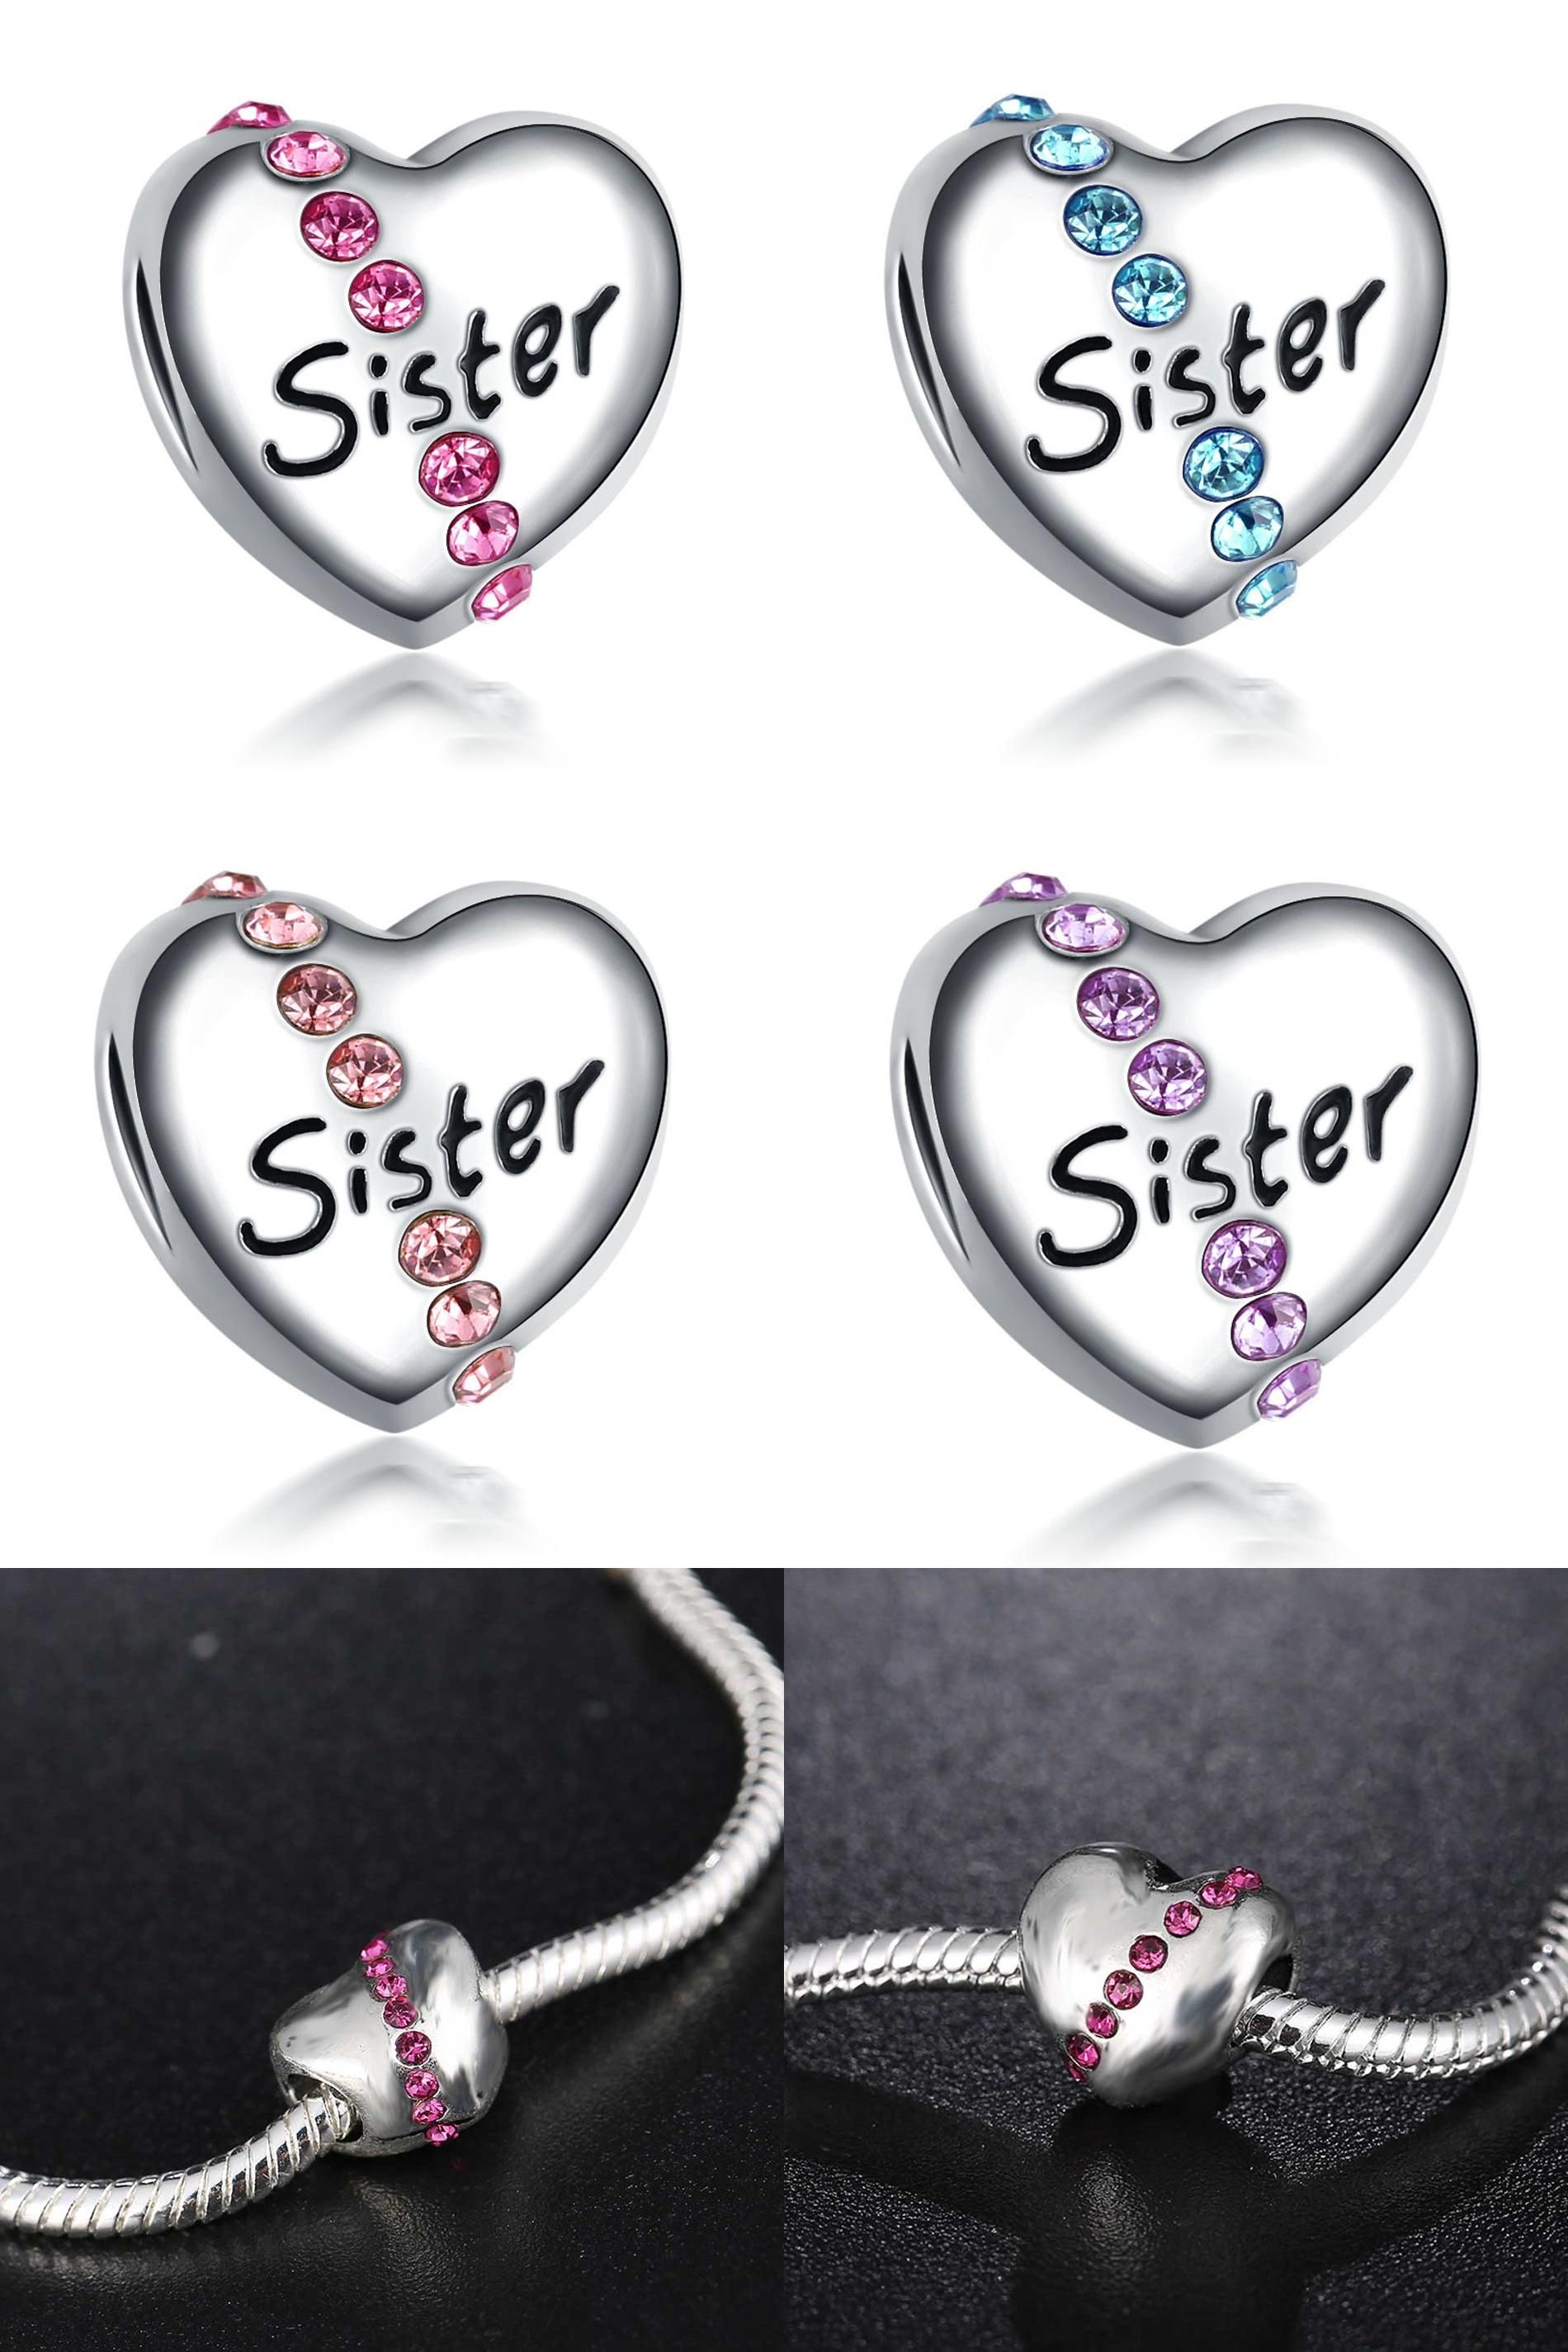 [Visit to Buy] New Silver Plated Bead Charm Cute Love Heart Sister With Crystal